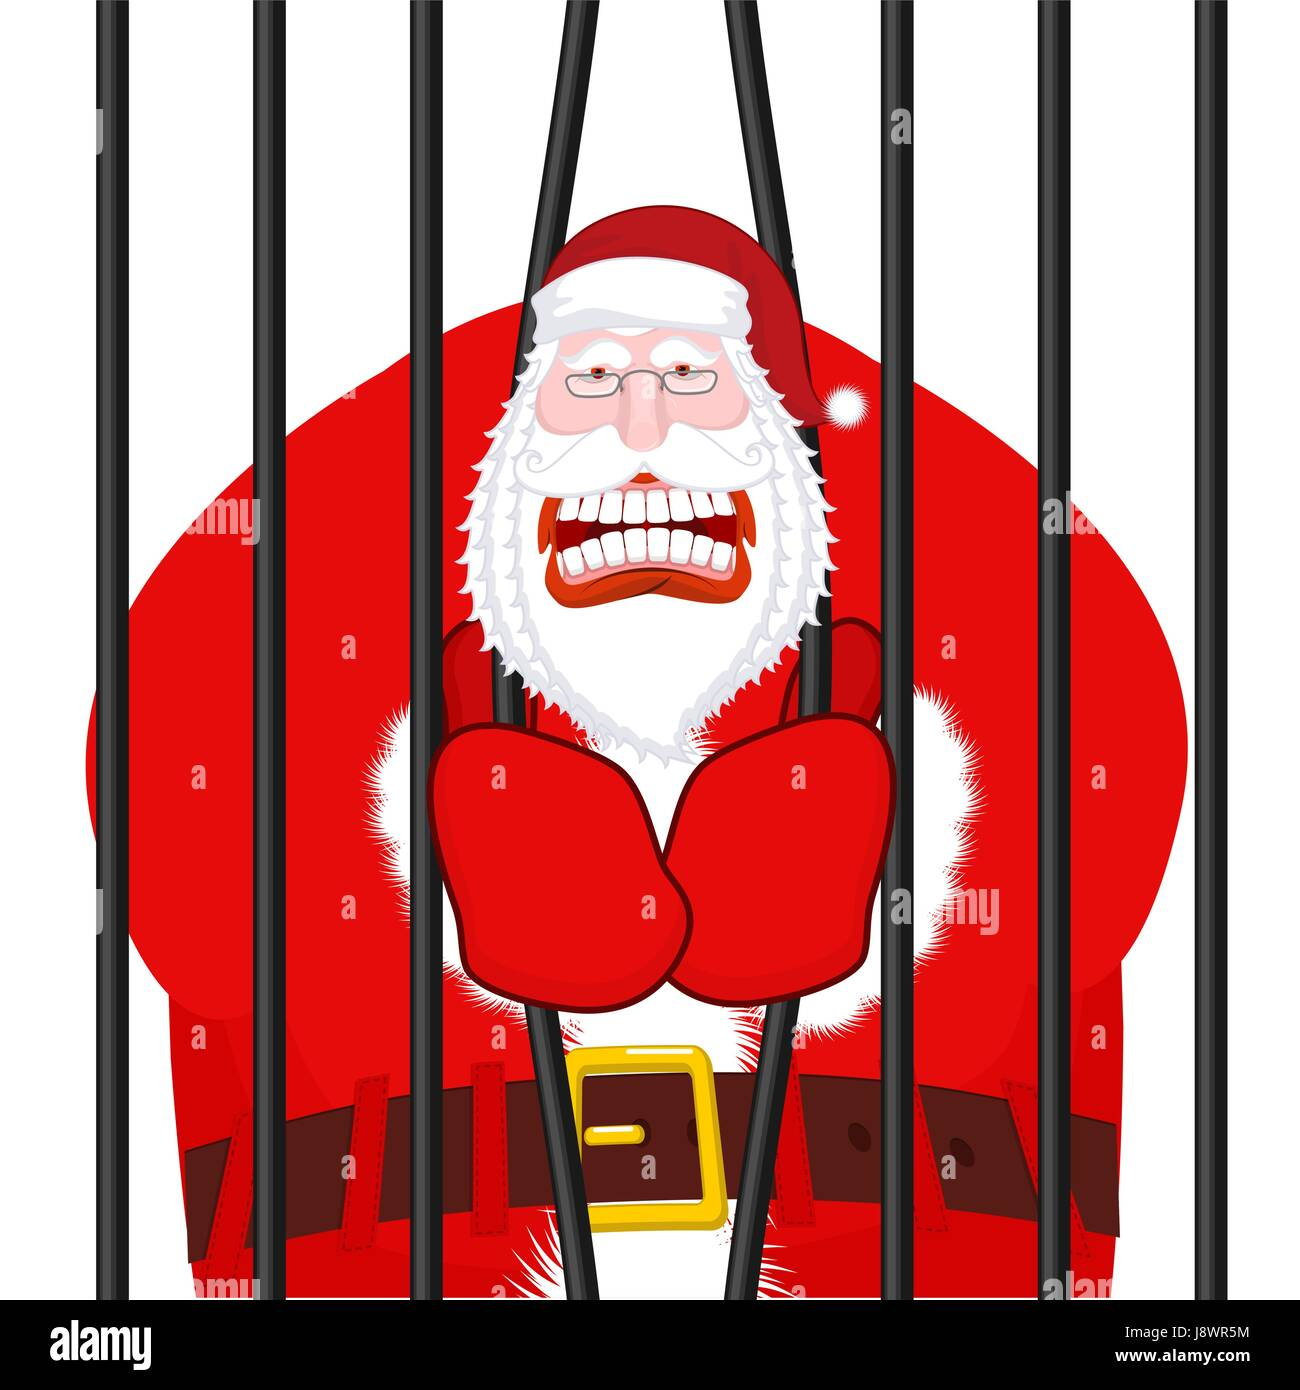 Christmas In Prison.Santa Claus Gangster Christmas In Prison Window In Prison